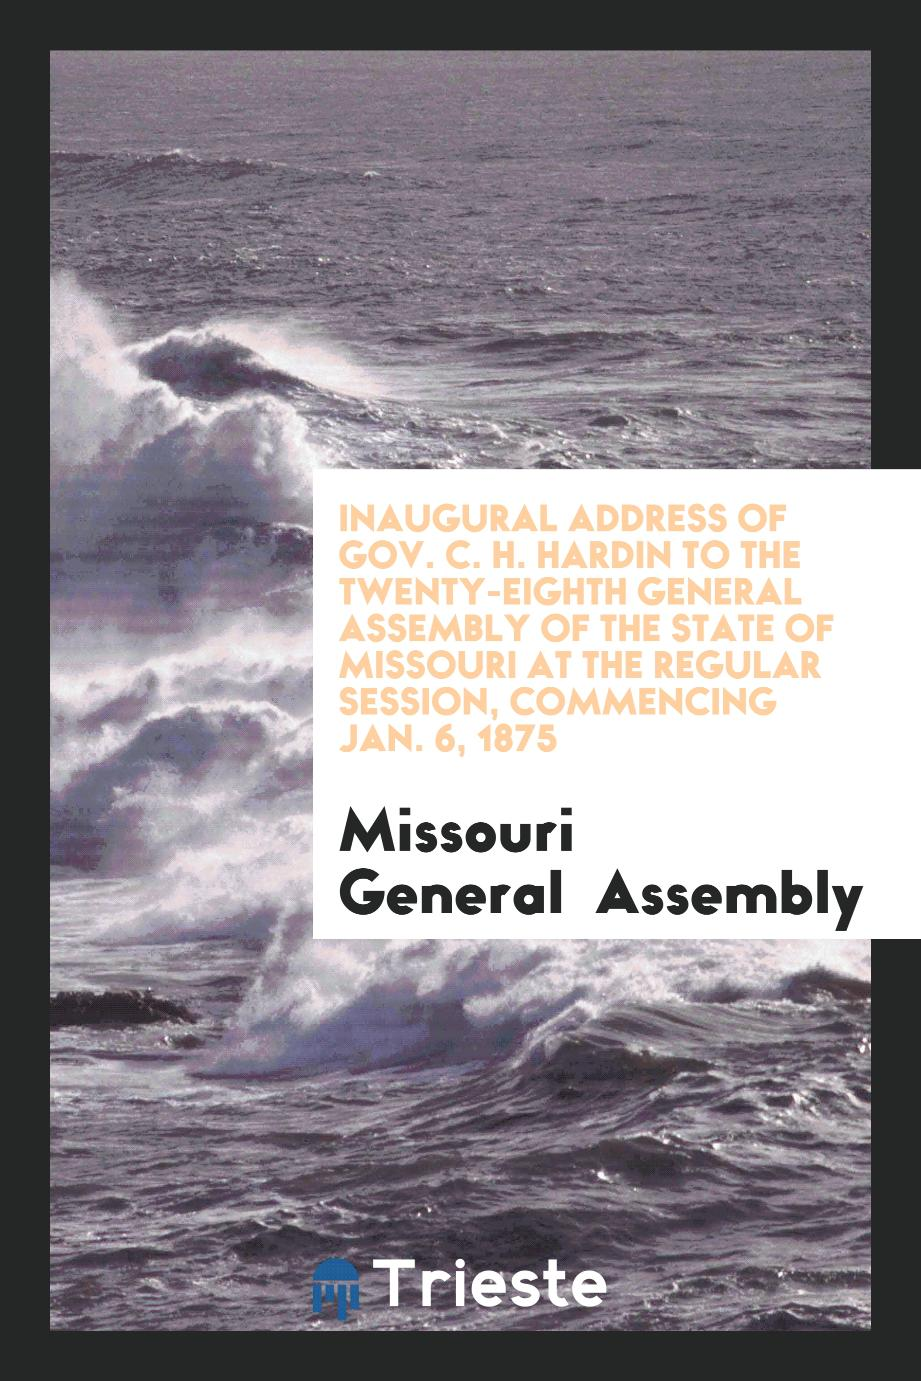 Inaugural Address of Gov. C. H. Hardin to the Twenty-Eighth General Assembly of the State of Missouri at the Regular Session, Commencing Jan. 6, 1875